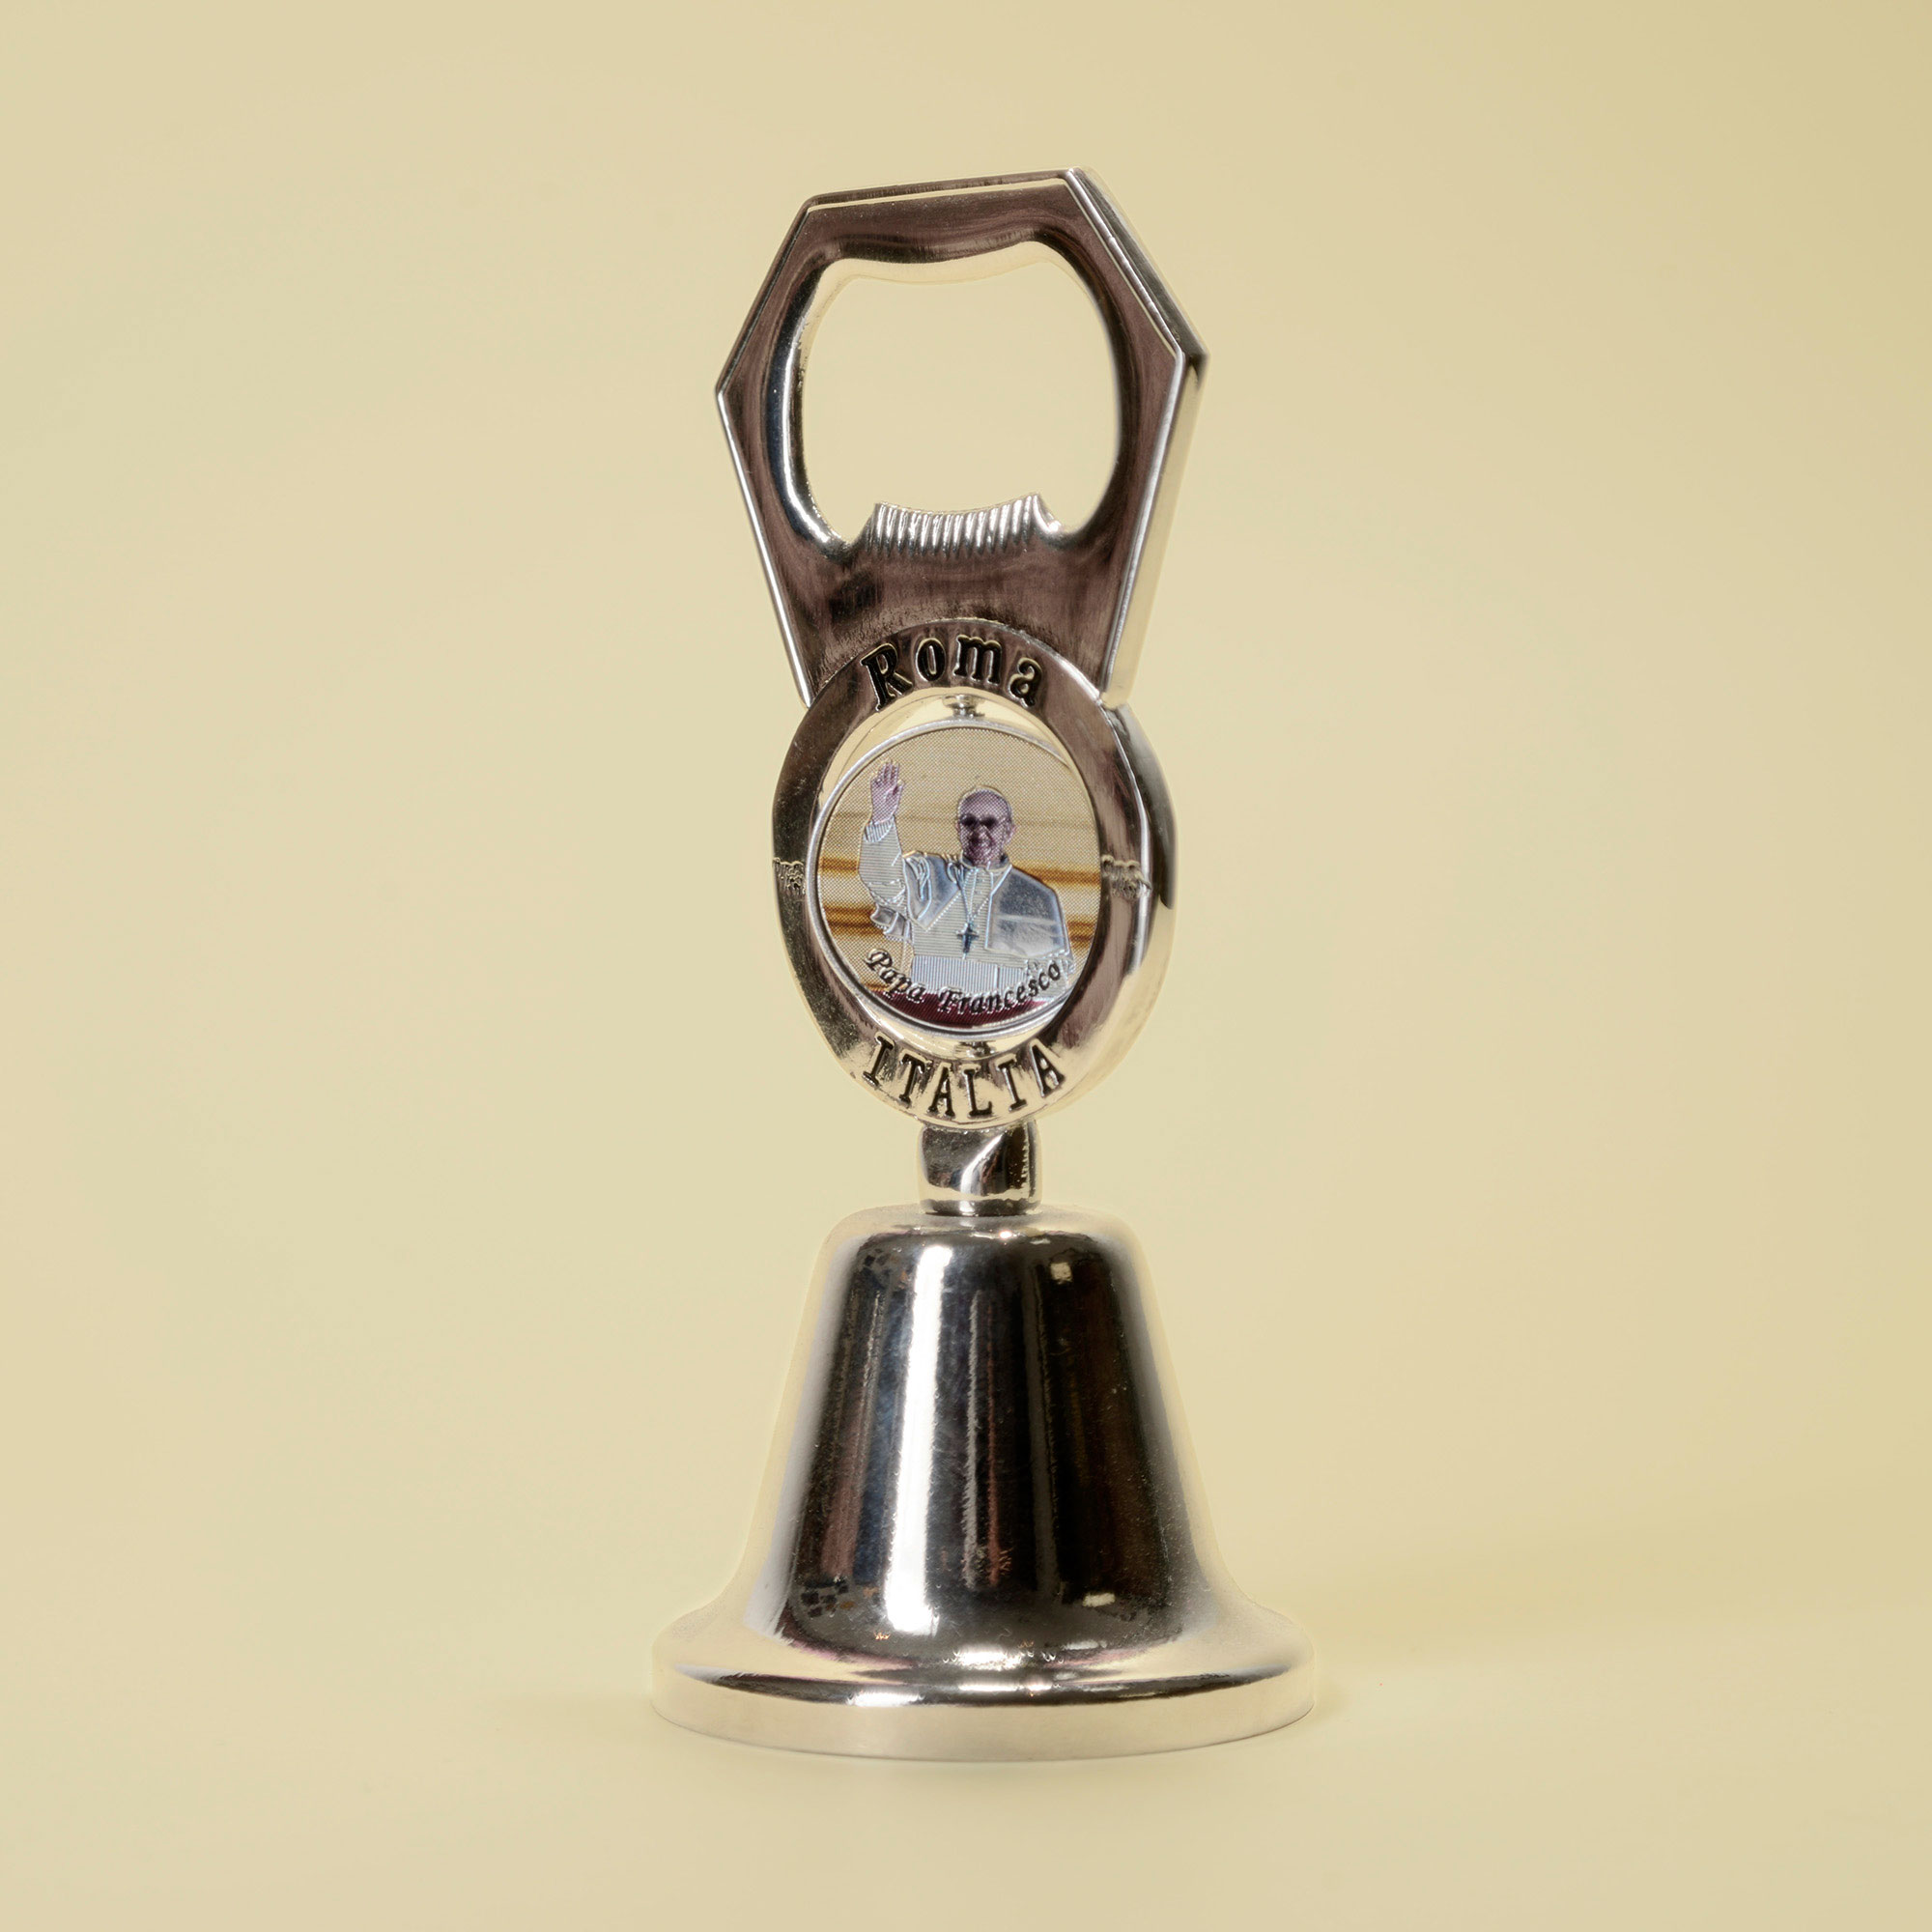 Metal bell and bottle opener with turning image of Pope Francis (on the other side Pope John Paul II).